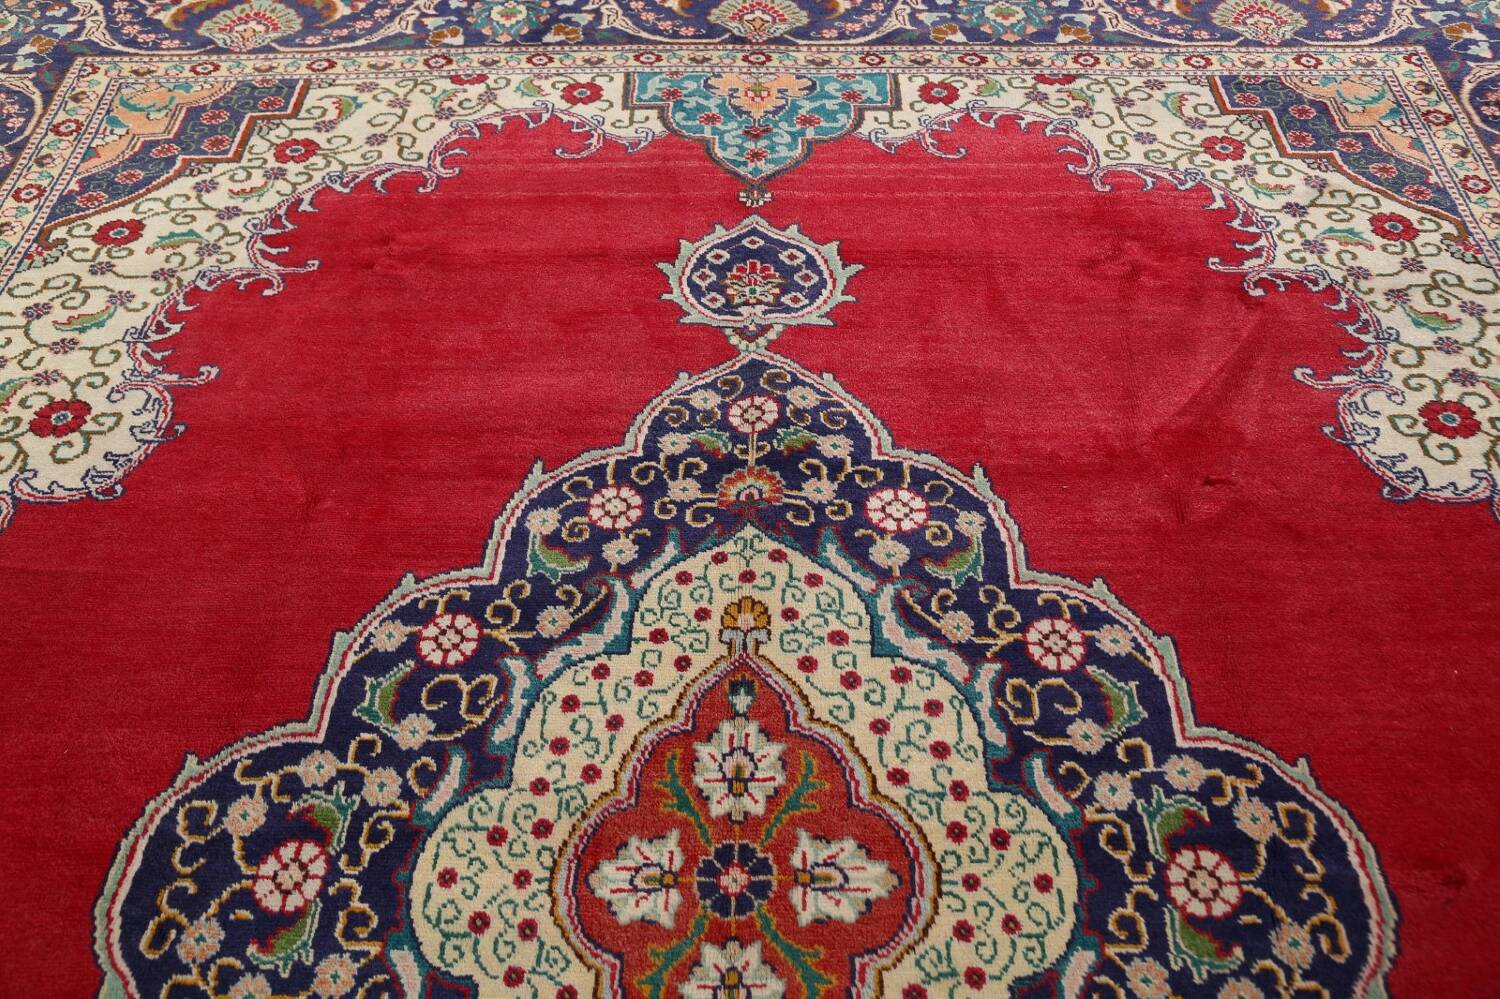 Floral Red Tabriz Persian Area Rug 10x13 image 15